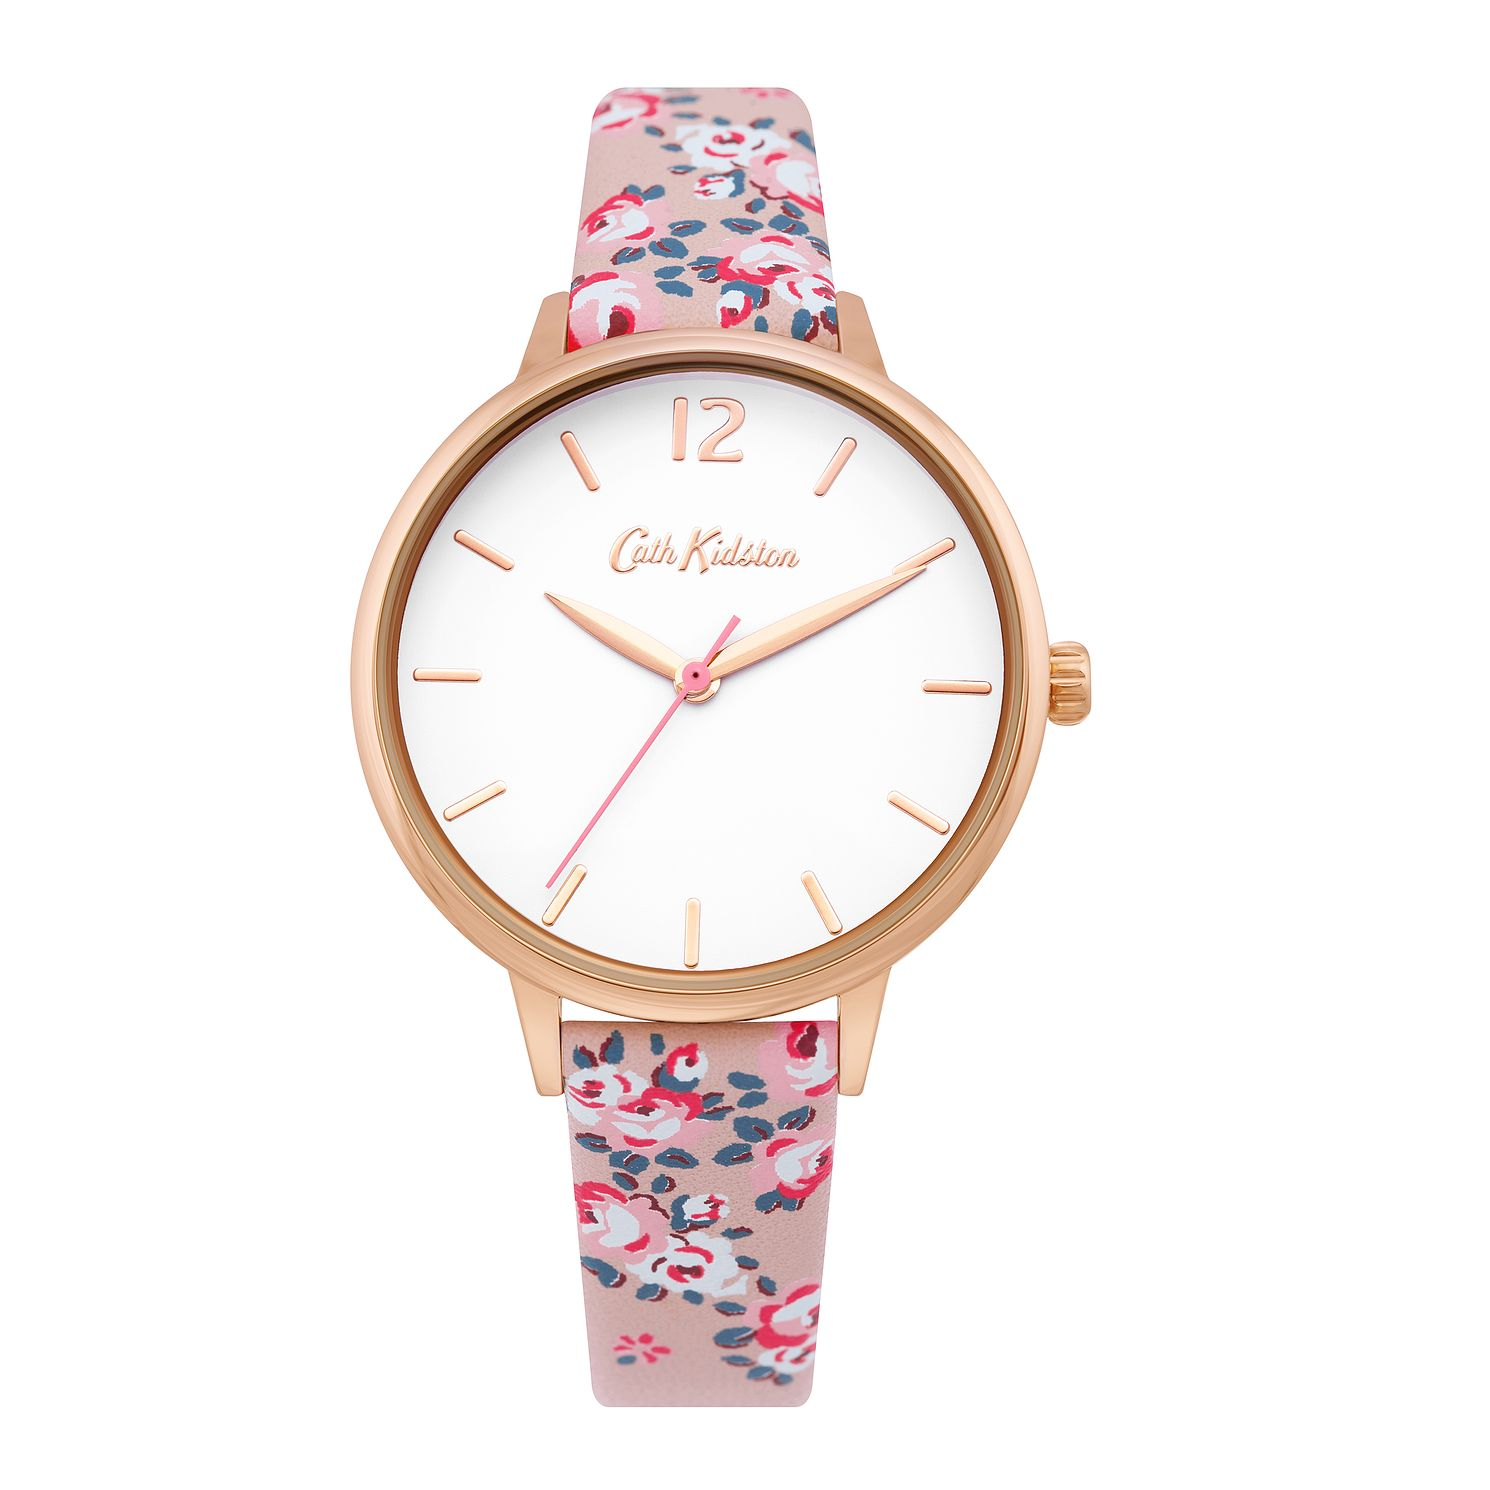 Cath Kidston Hampton Rose Ladies' Pink PU Strap Watch - Product number 4094808